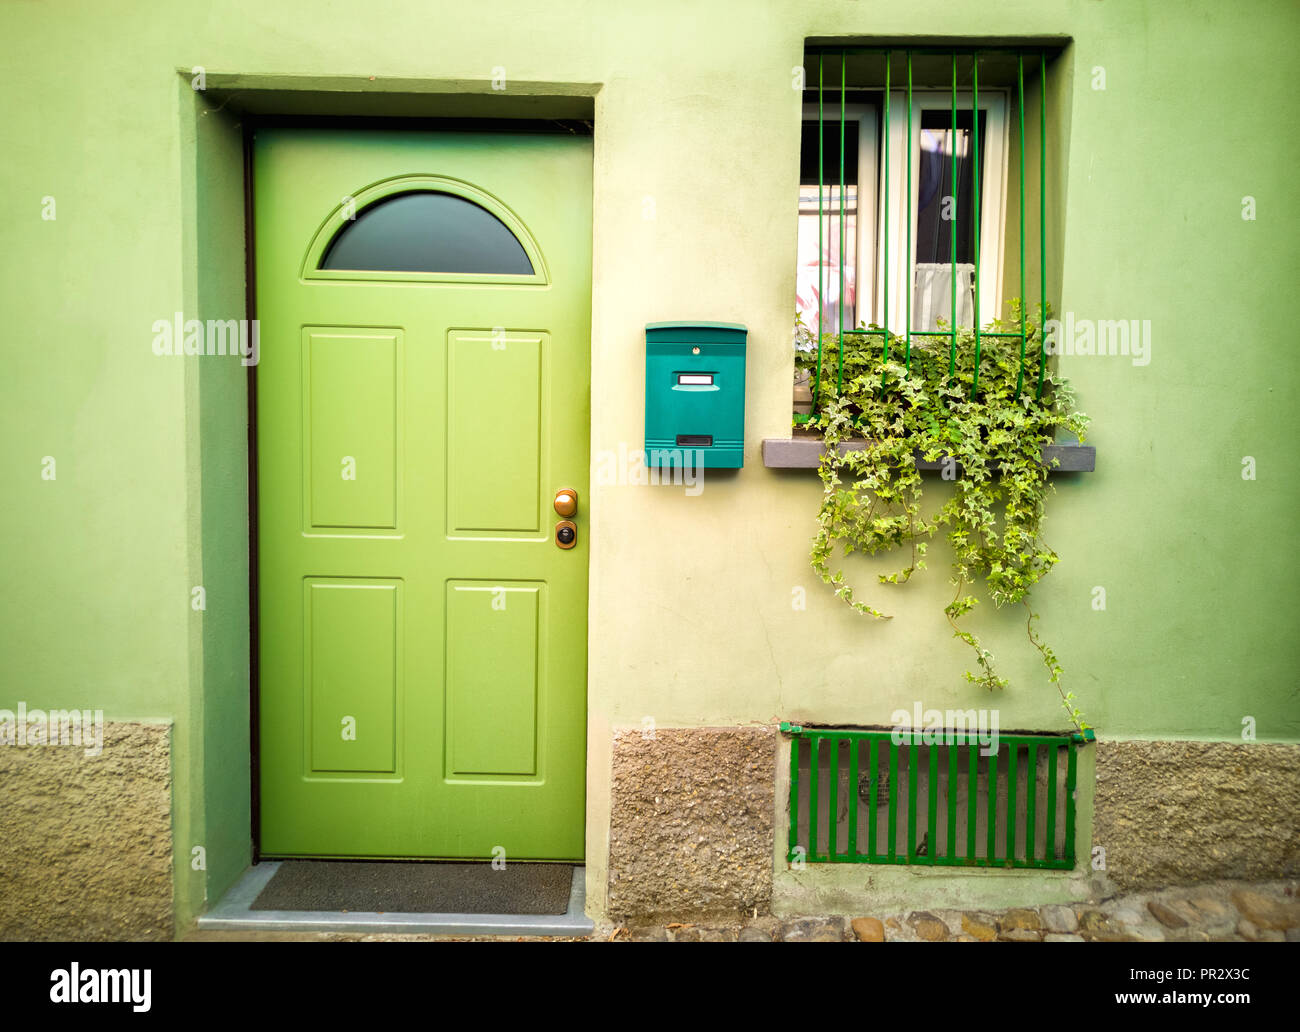 green house door - eco friendly sustainable architecture Environmentally Sustainable Building - Stock Image